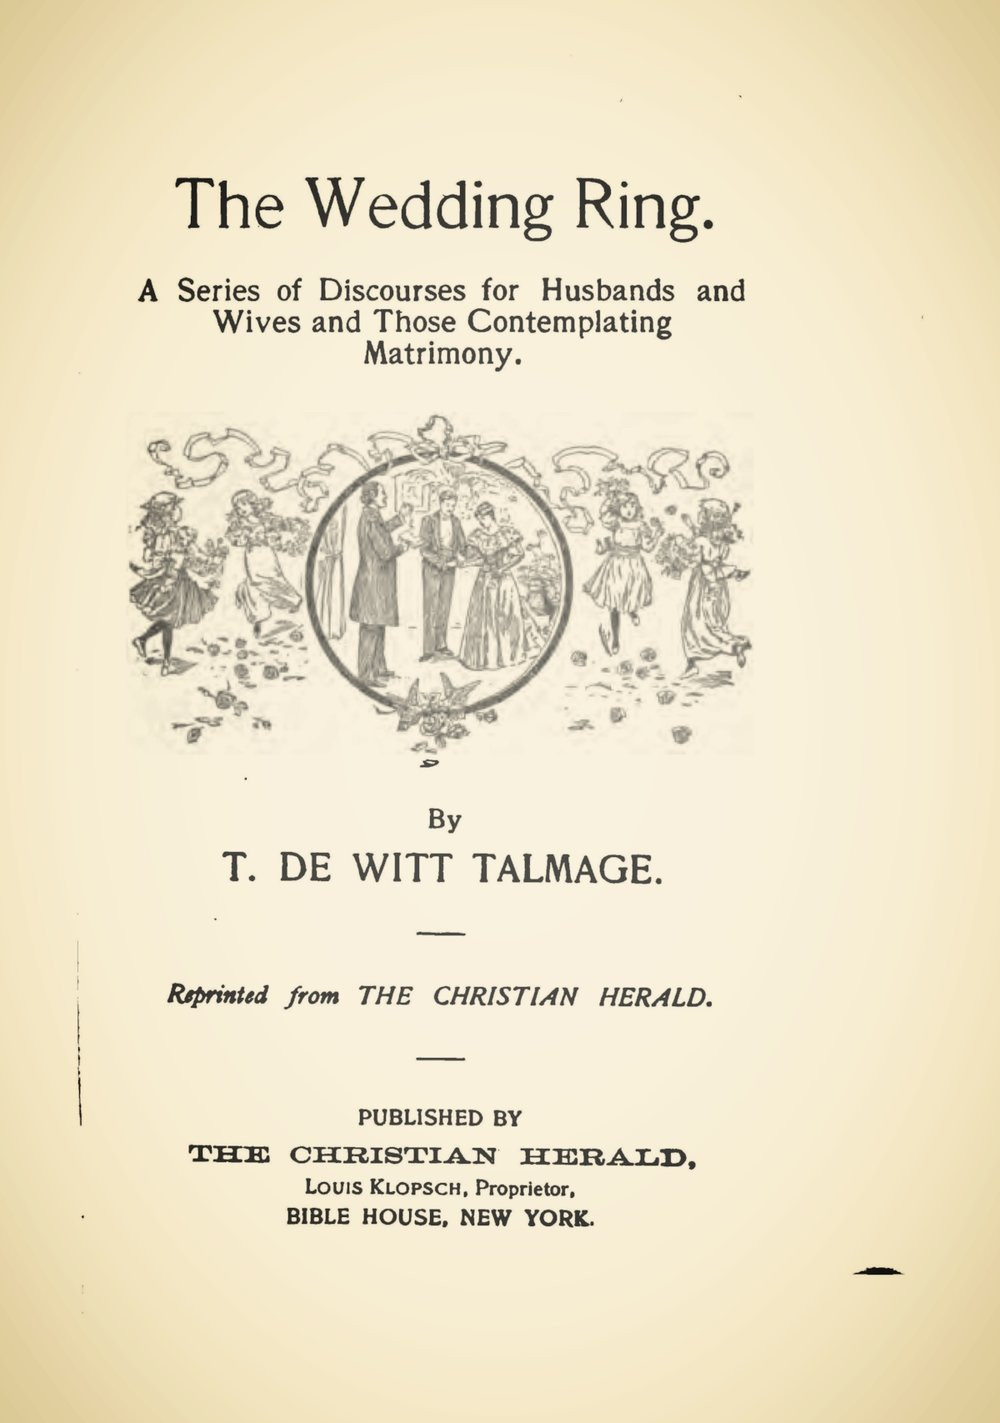 Talmage, Thomas De Witt, The Wedding Ring Title Page.jpg